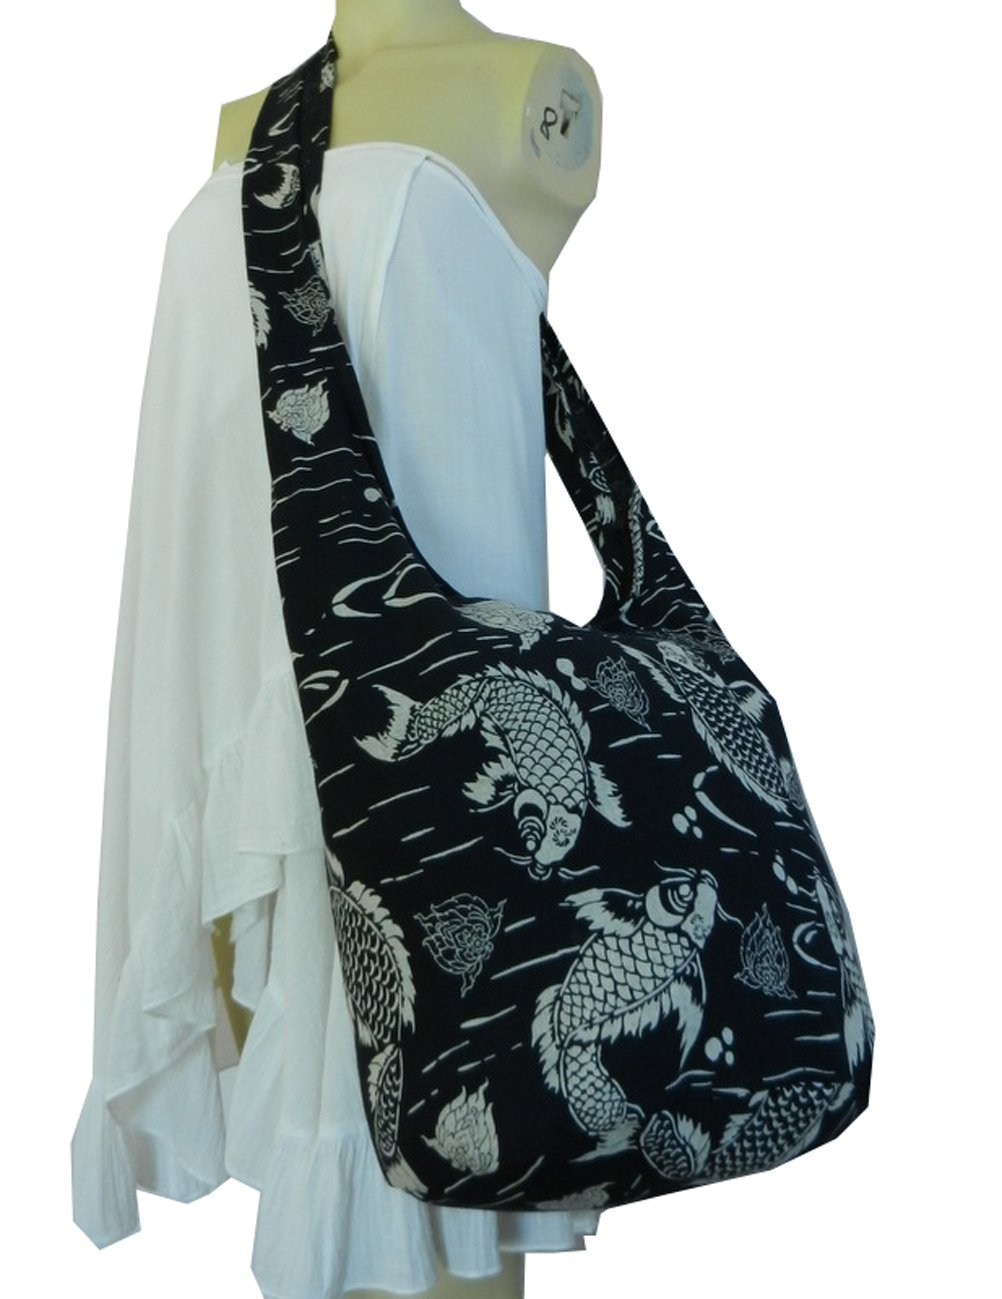 BTP Absolute Black Coy Fish Lotus Sling Bag Crossbody Shoulder Purse Hippie Hobo Thai Gypsy Bohemian Large